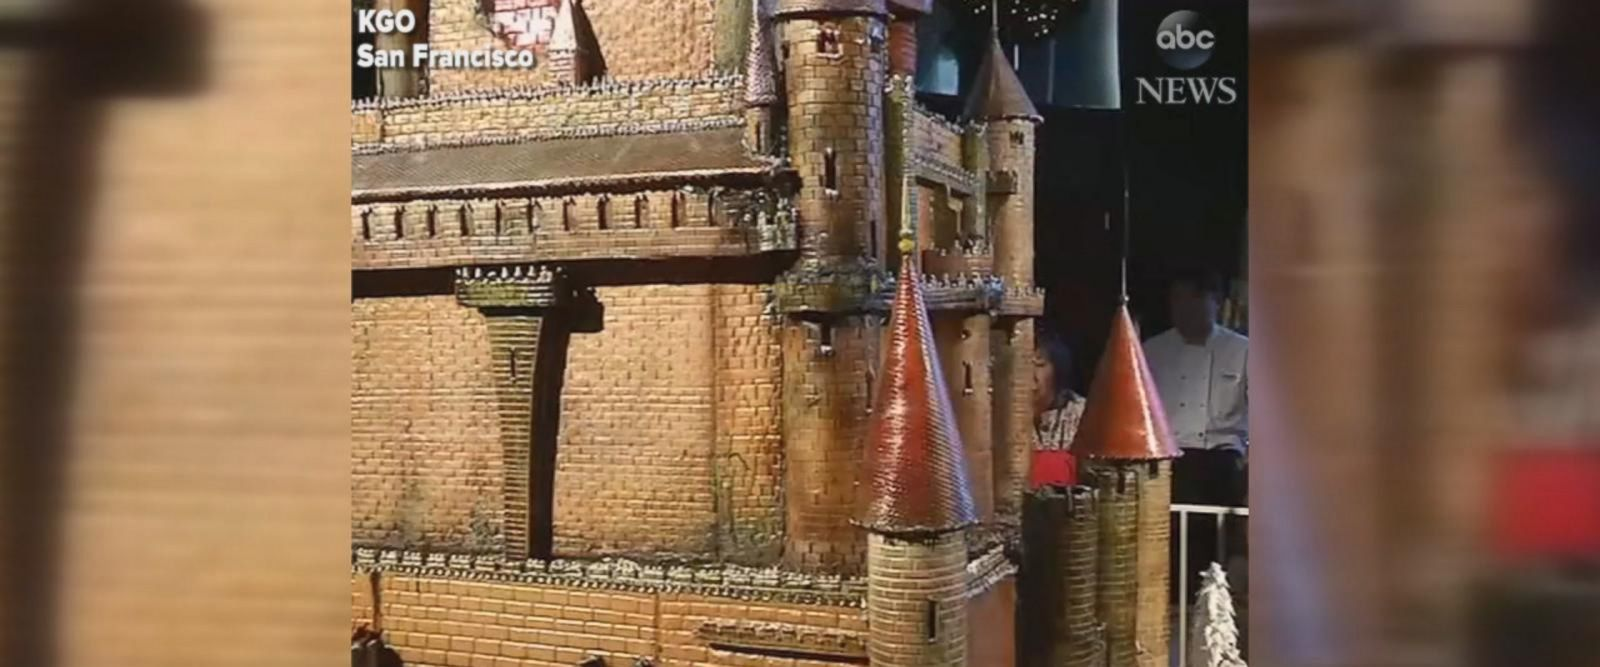 VIDEO: San Francisco hotel unveils giant sugar castle